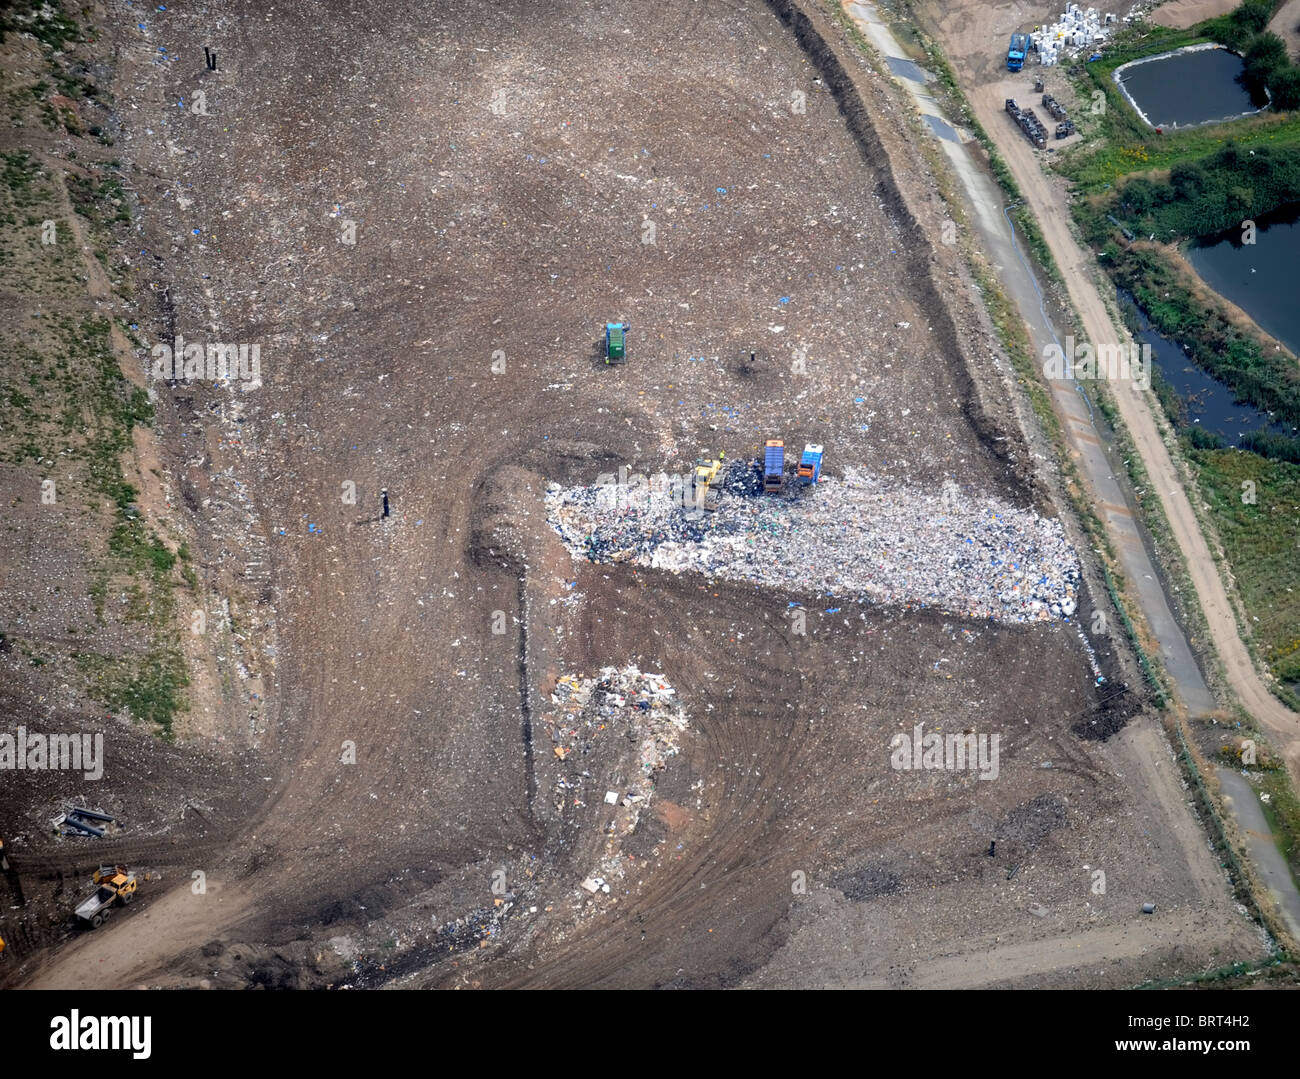 Aerial view of a landfill site to the west of Gloucester UK - Stock Image